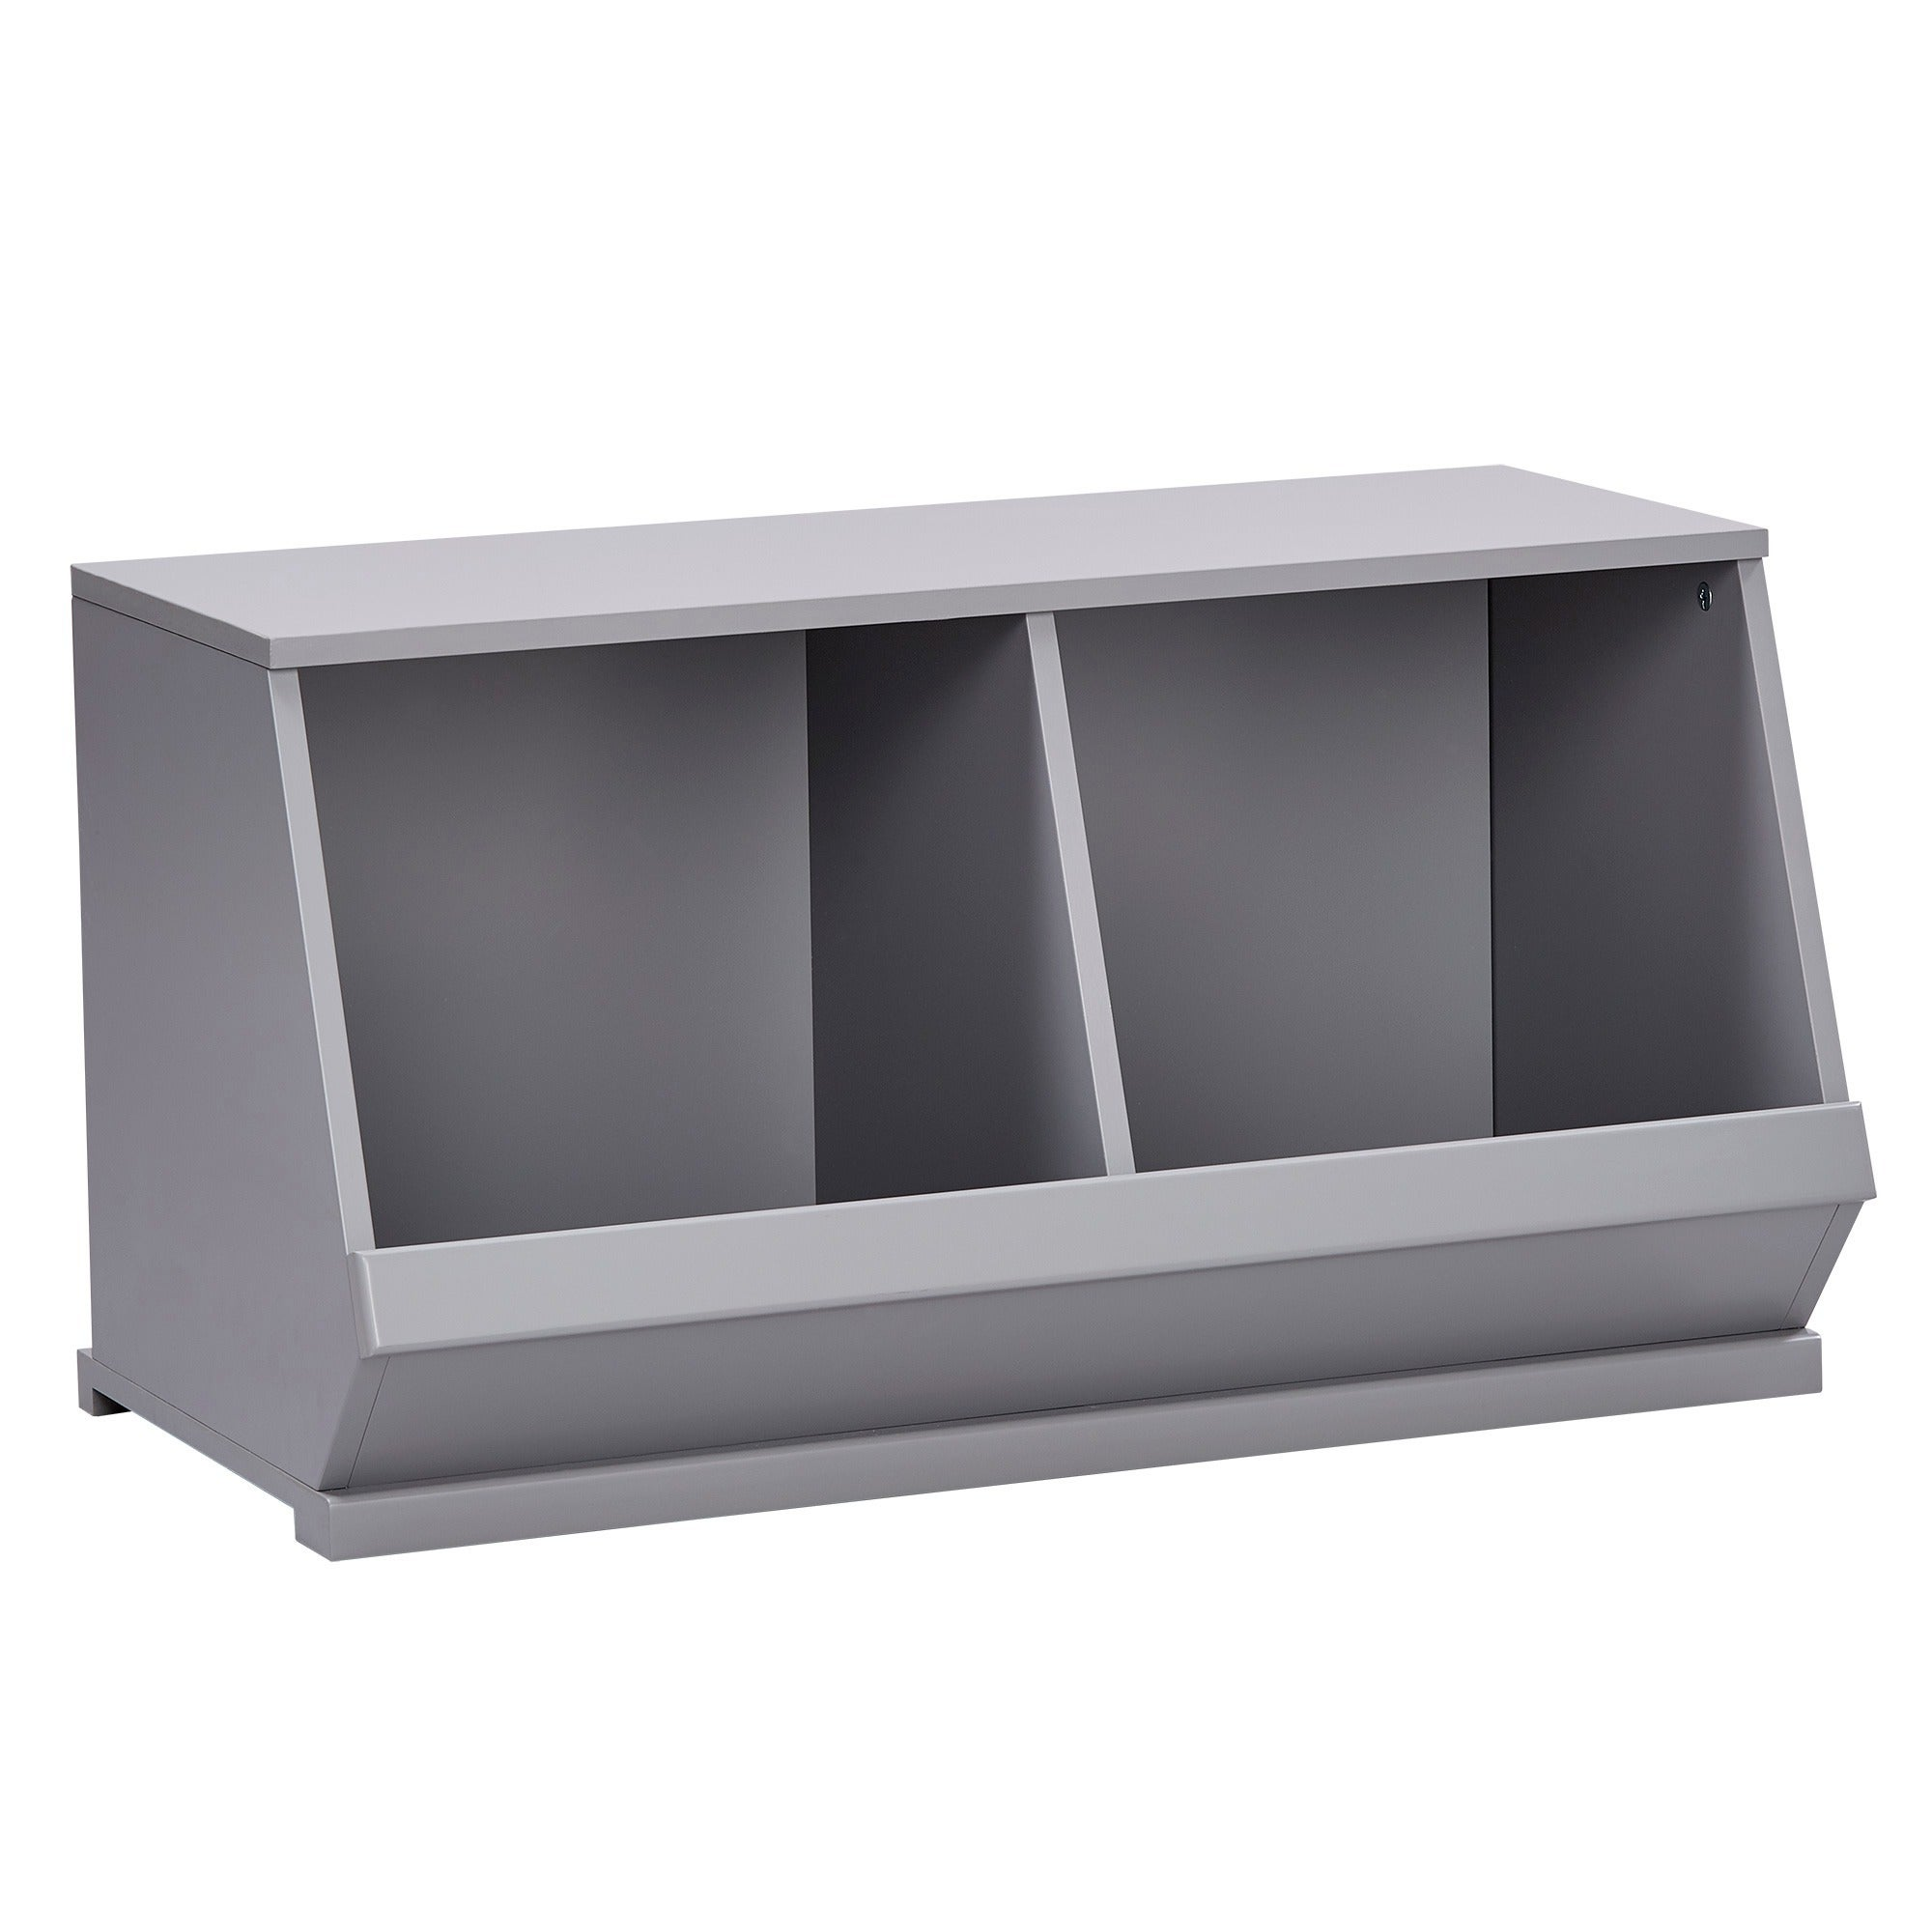 Riley Modular Stacking Storage Bins by iNSPIRE Q Junior - Free Shipping  Today - Overstock.com - 20616263